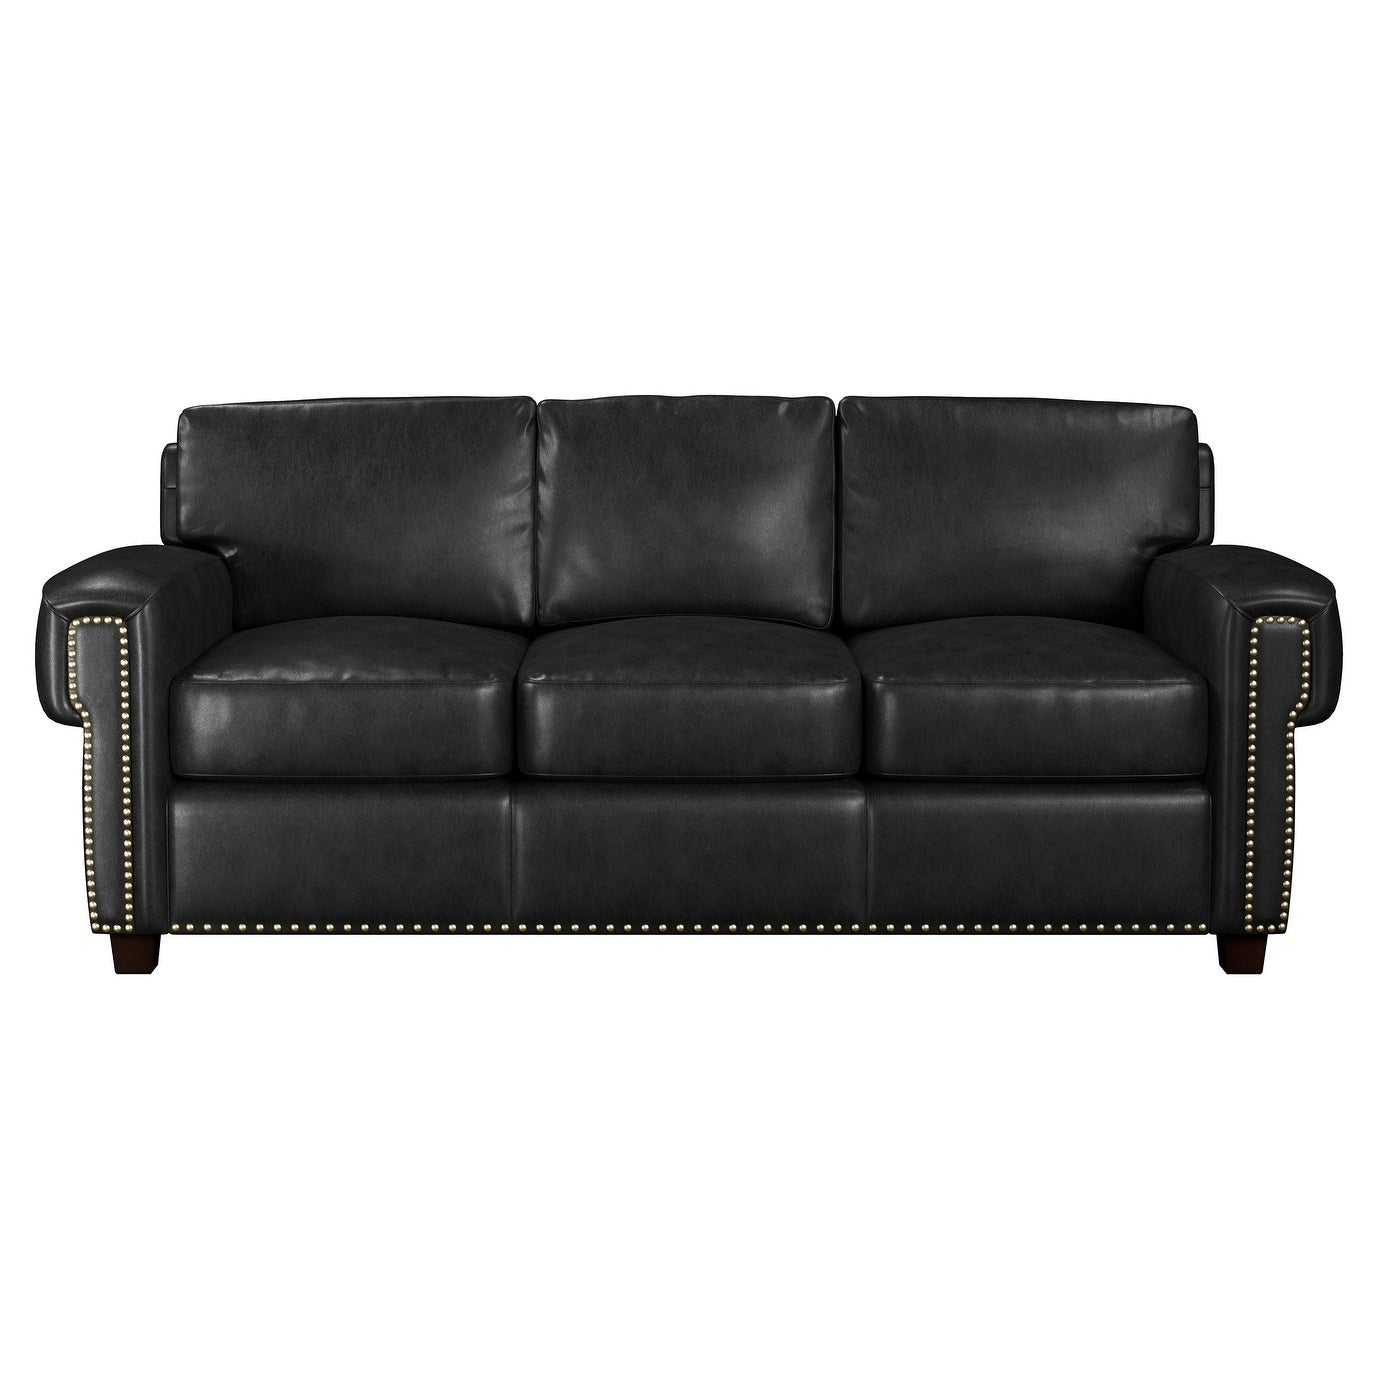 shop made to order como 100 top grain leather queen sleeper sofa rh overstock com american leather queen sleeper sofa black leather queen sleeper sofa